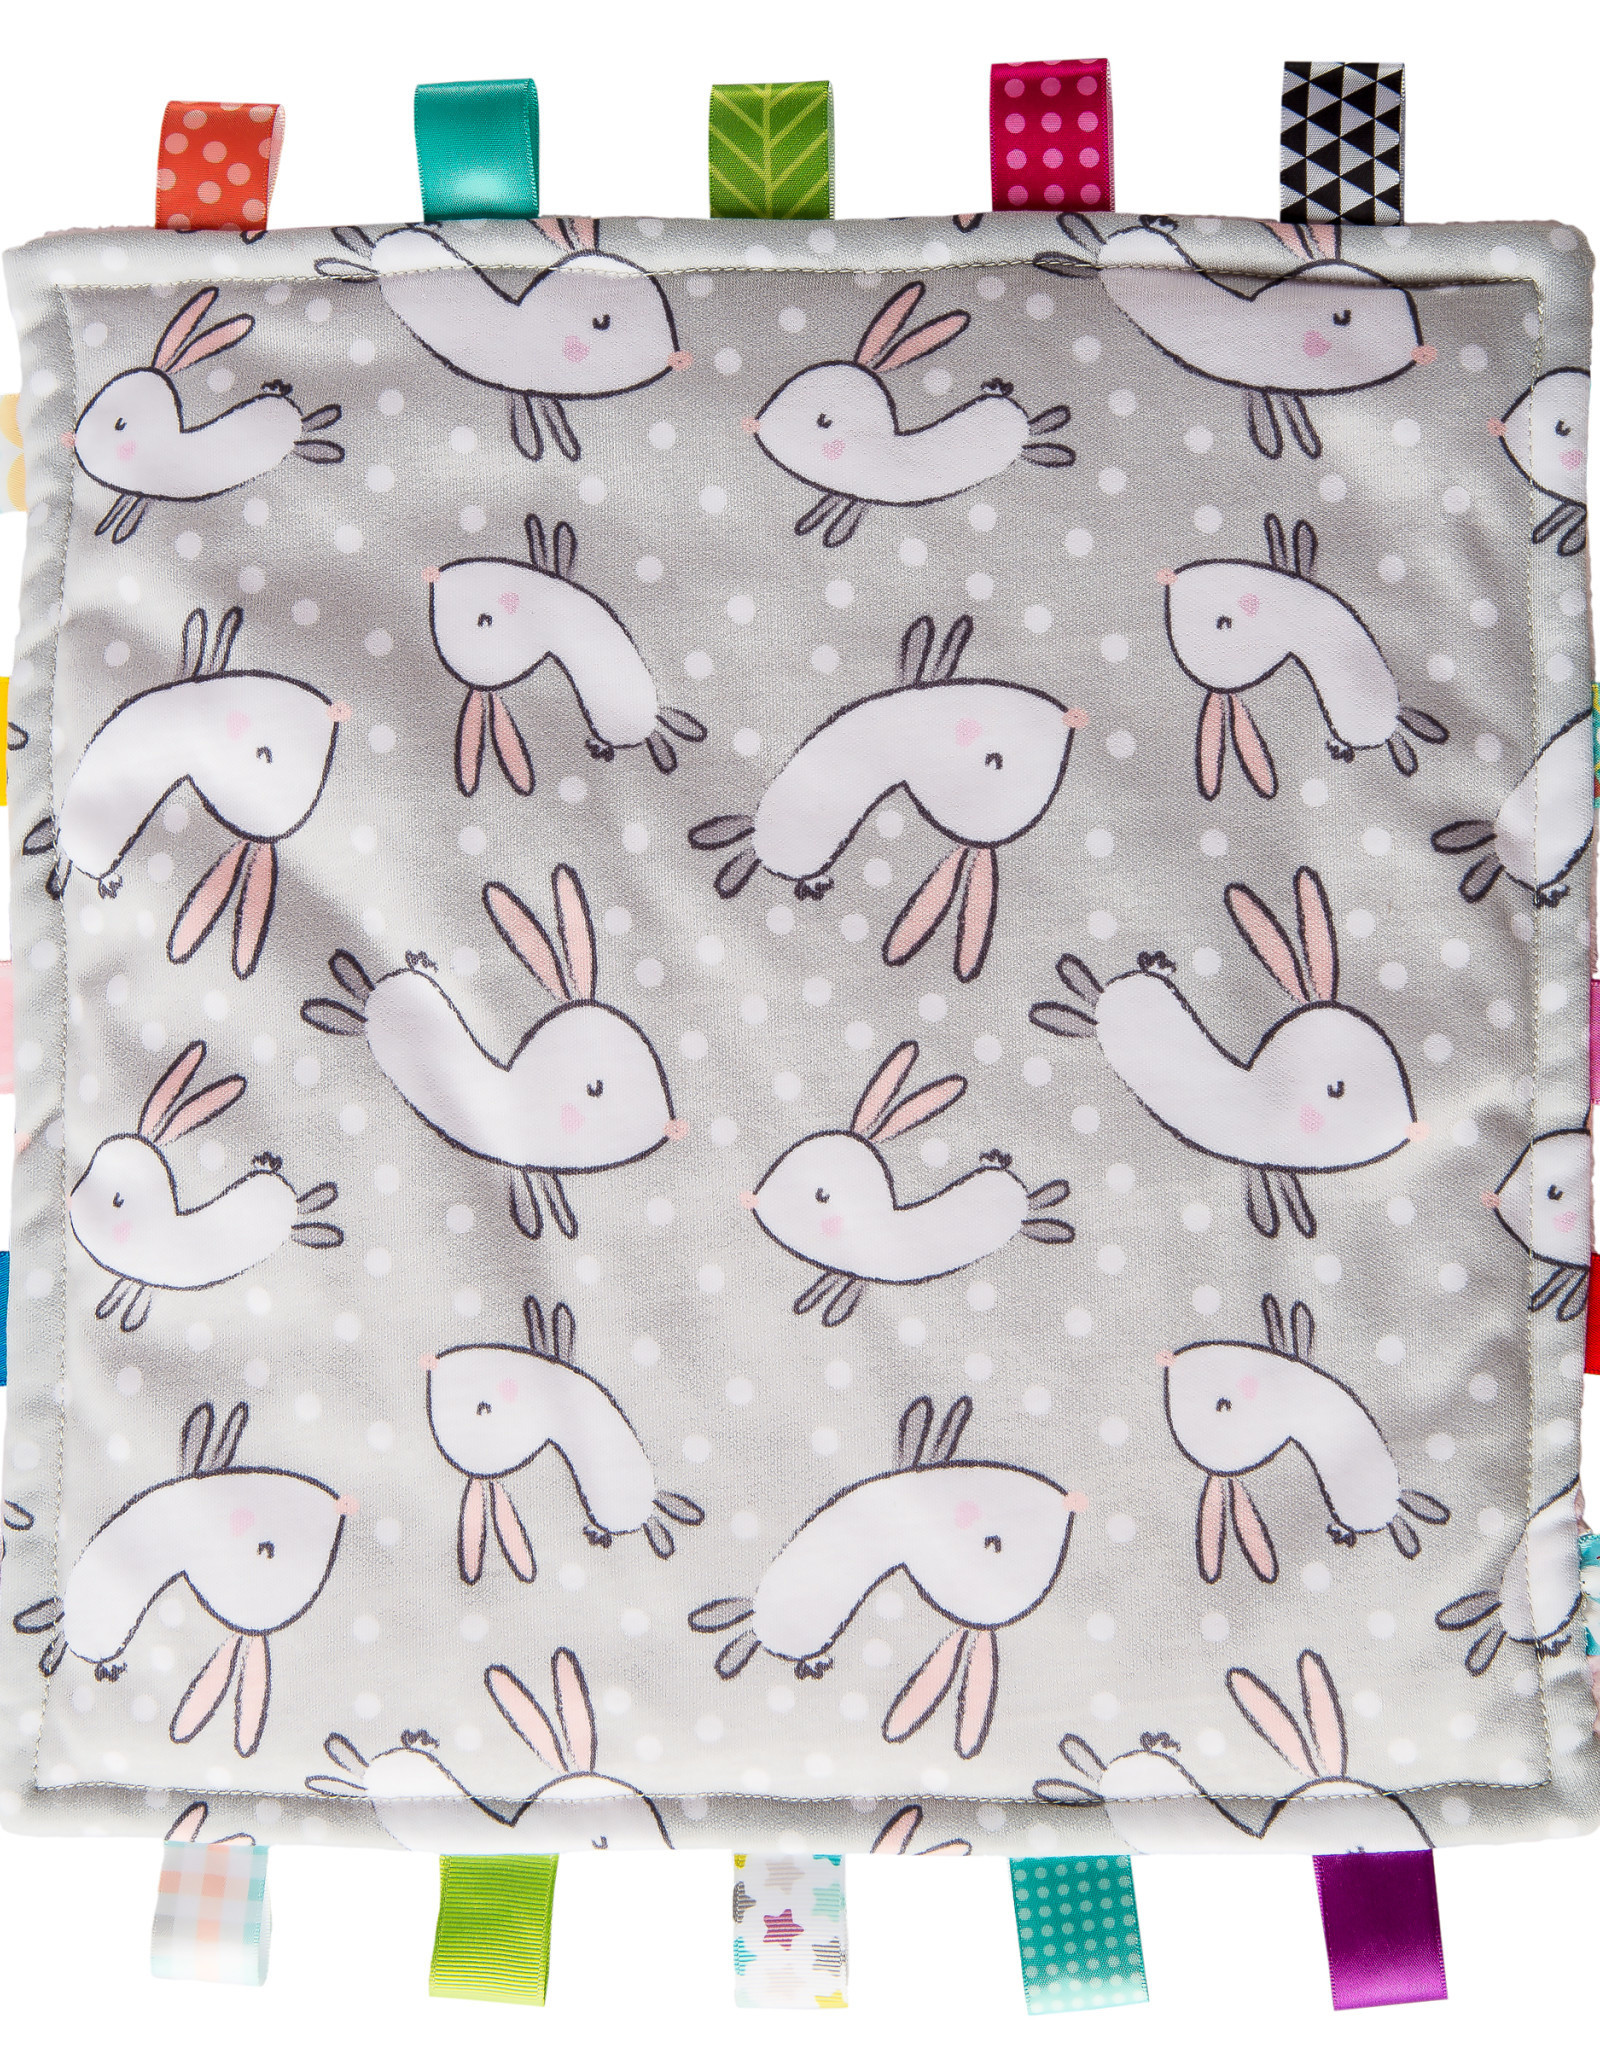 Mary Meyer Taggies Original Comfy - Bunnies